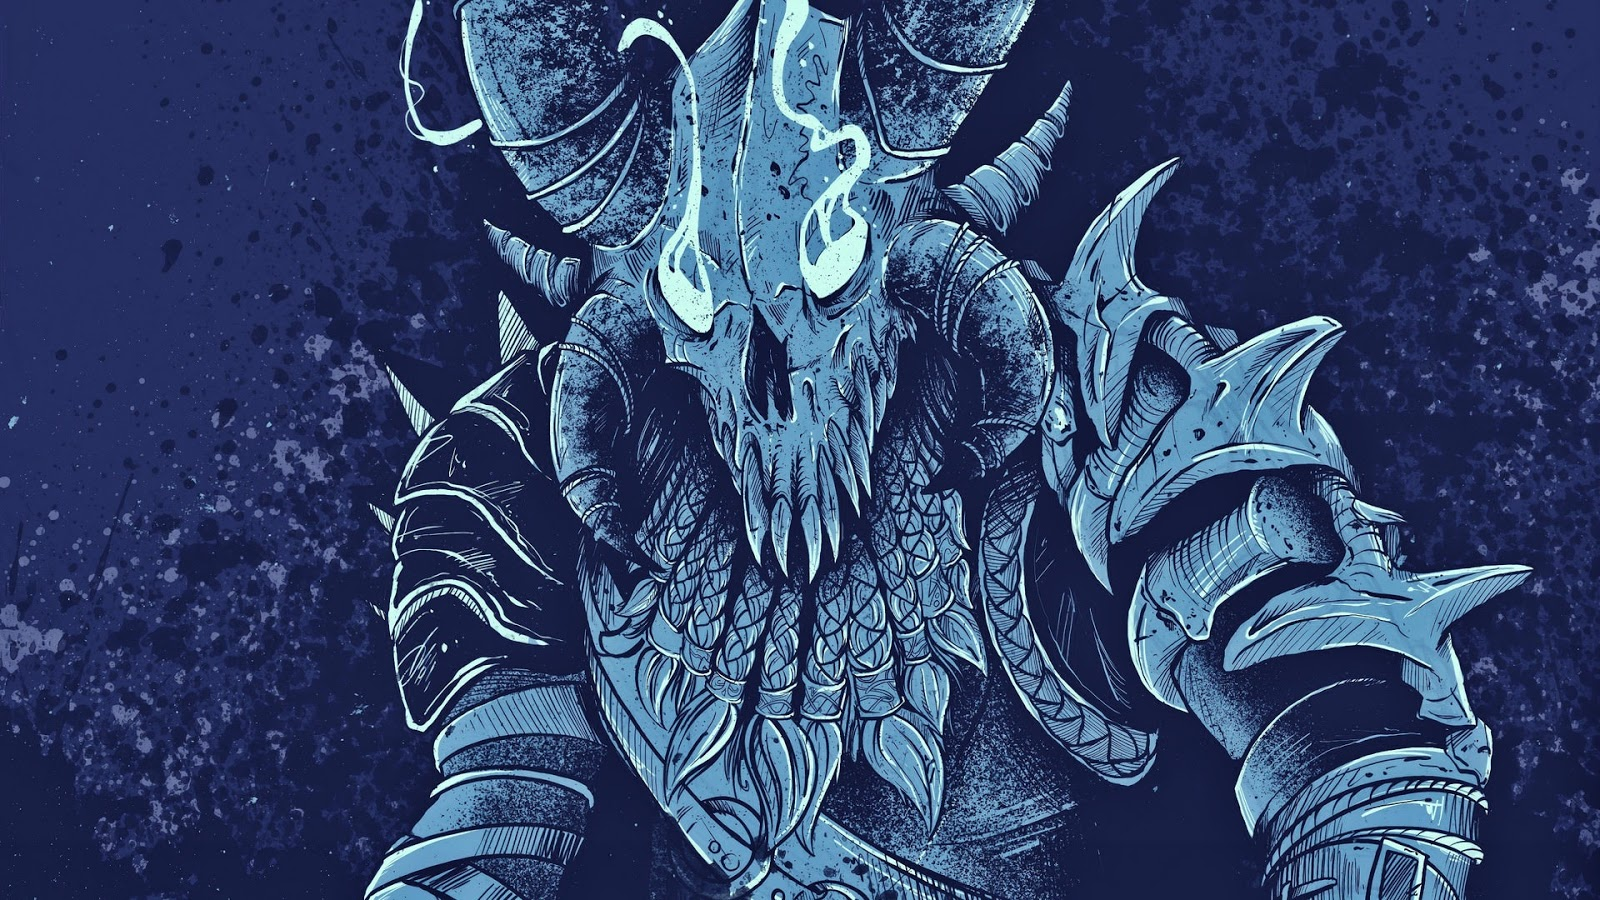 Download Fortnite Ragnarok Wallpapers For Desktop Mobiles Tablets In High  Quality Widescreen Ultra Suhd Jpg 1600x900